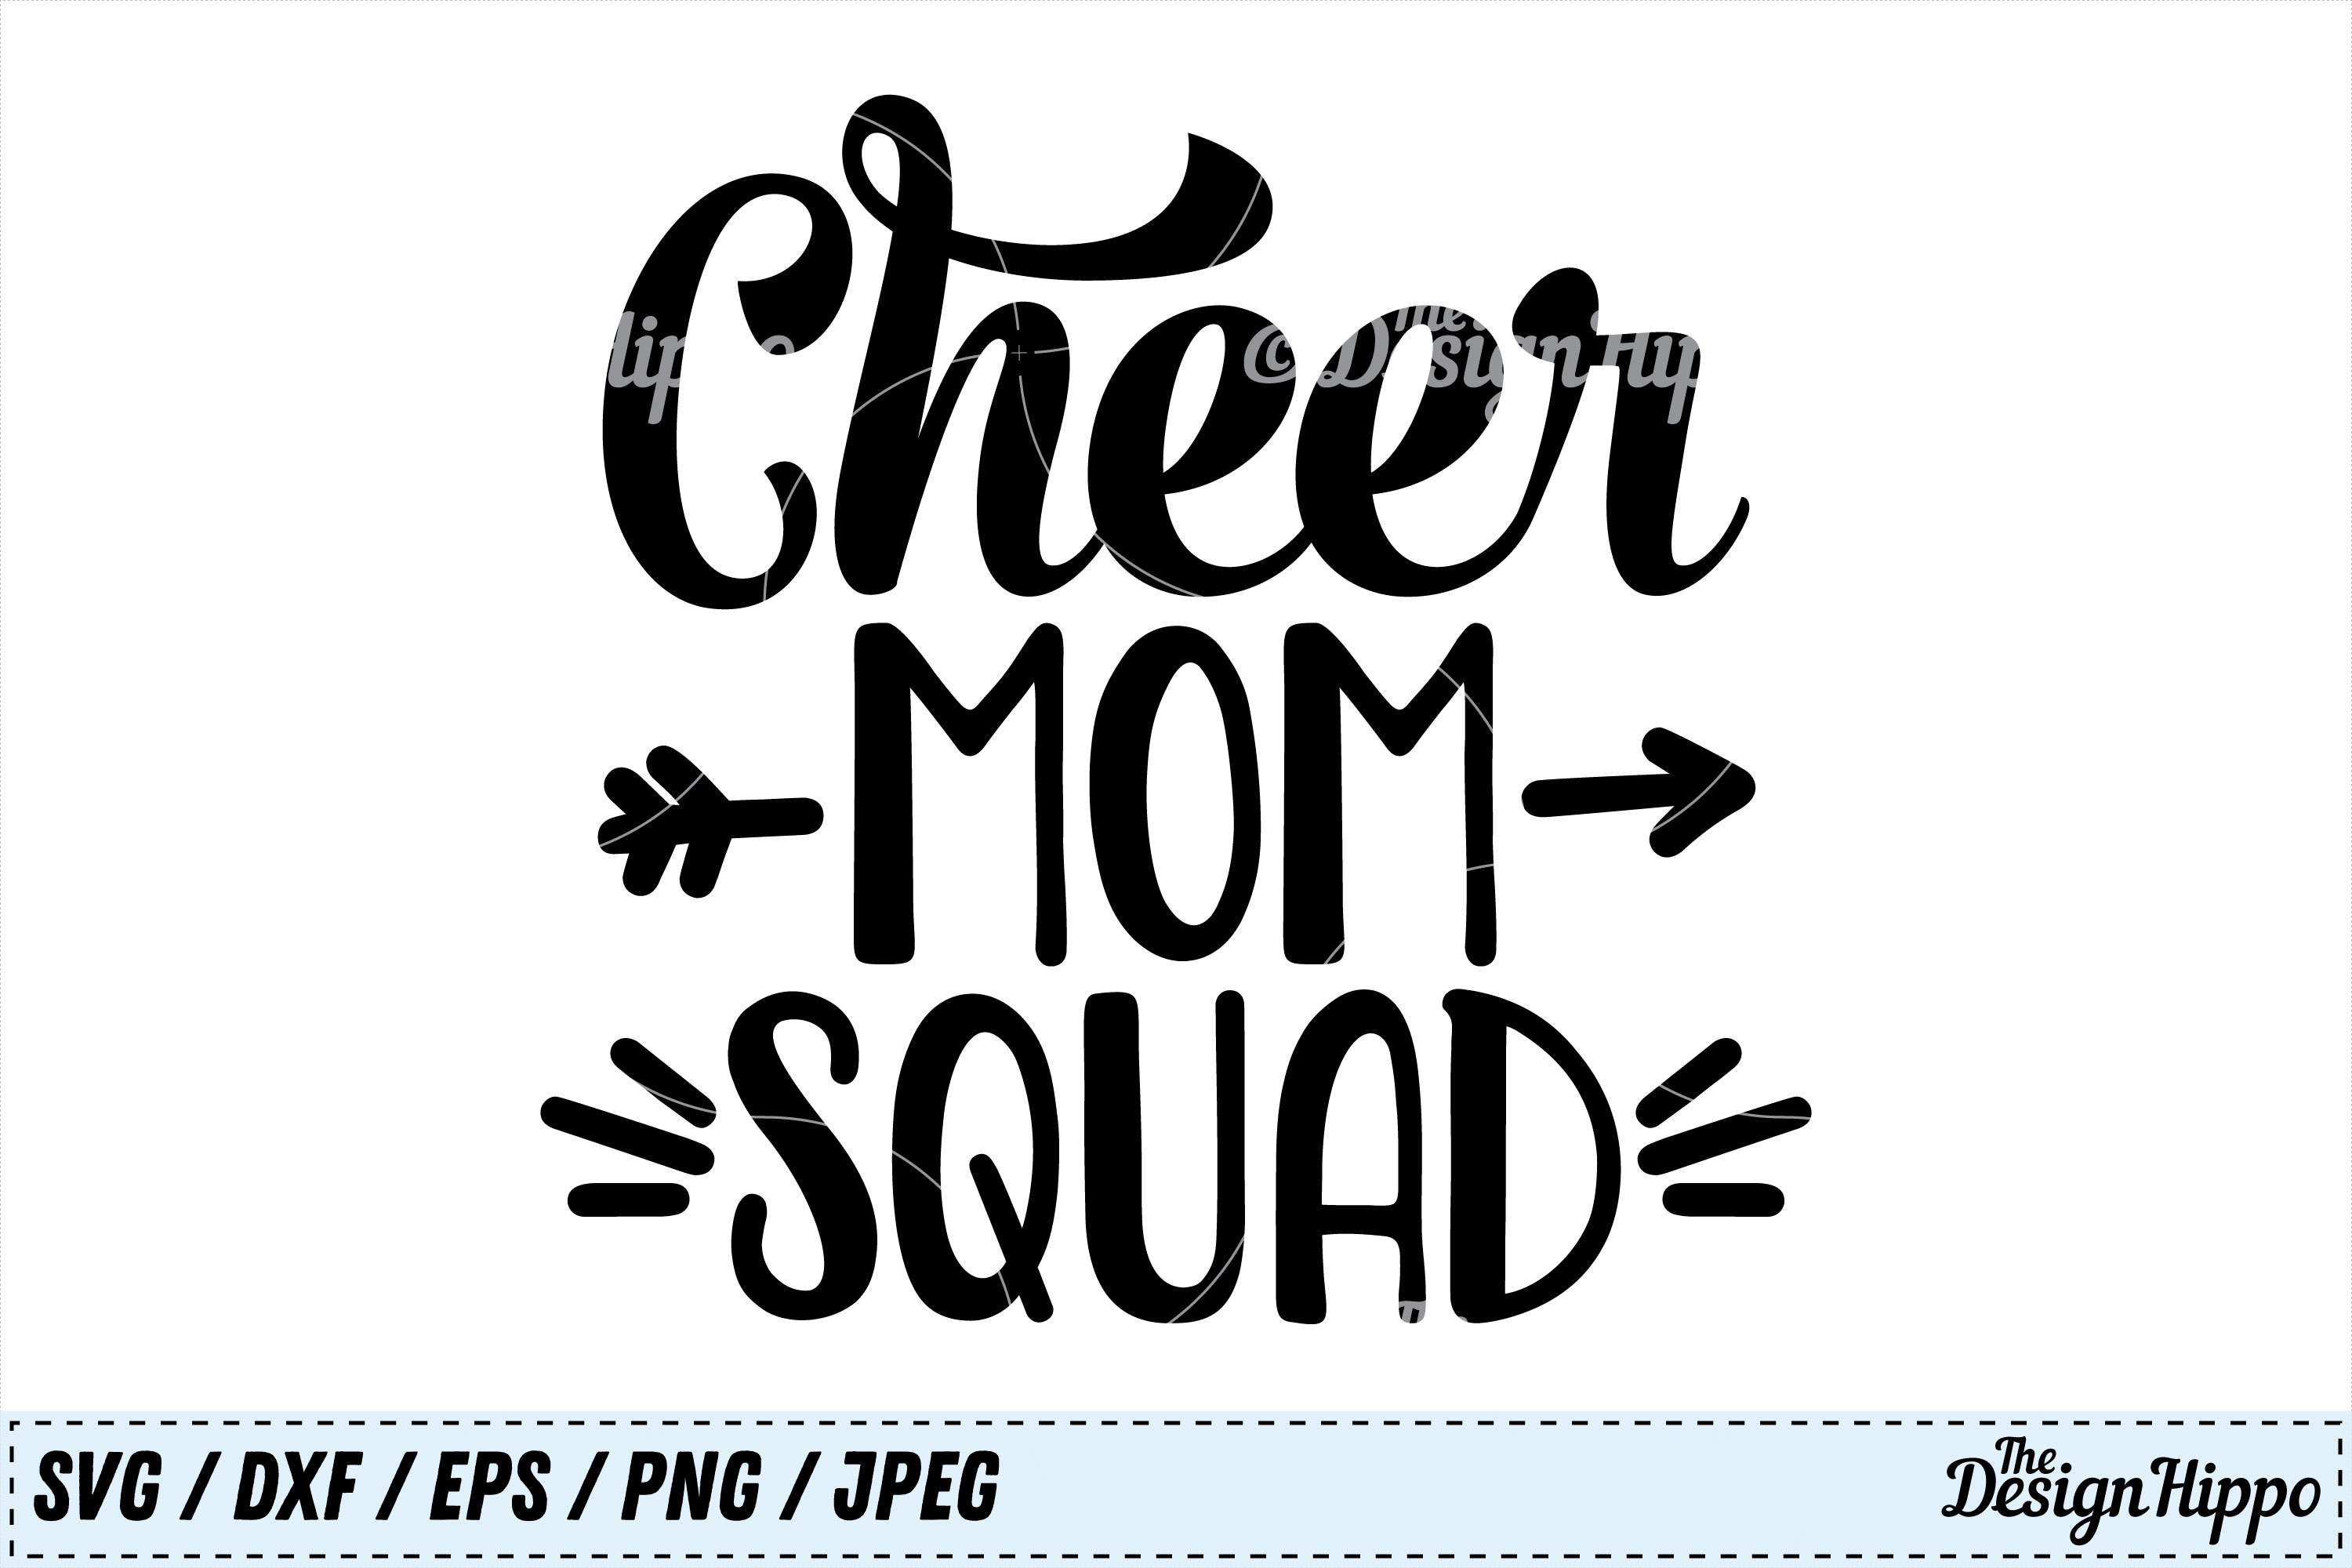 cheer mom svg #951, Download drawings